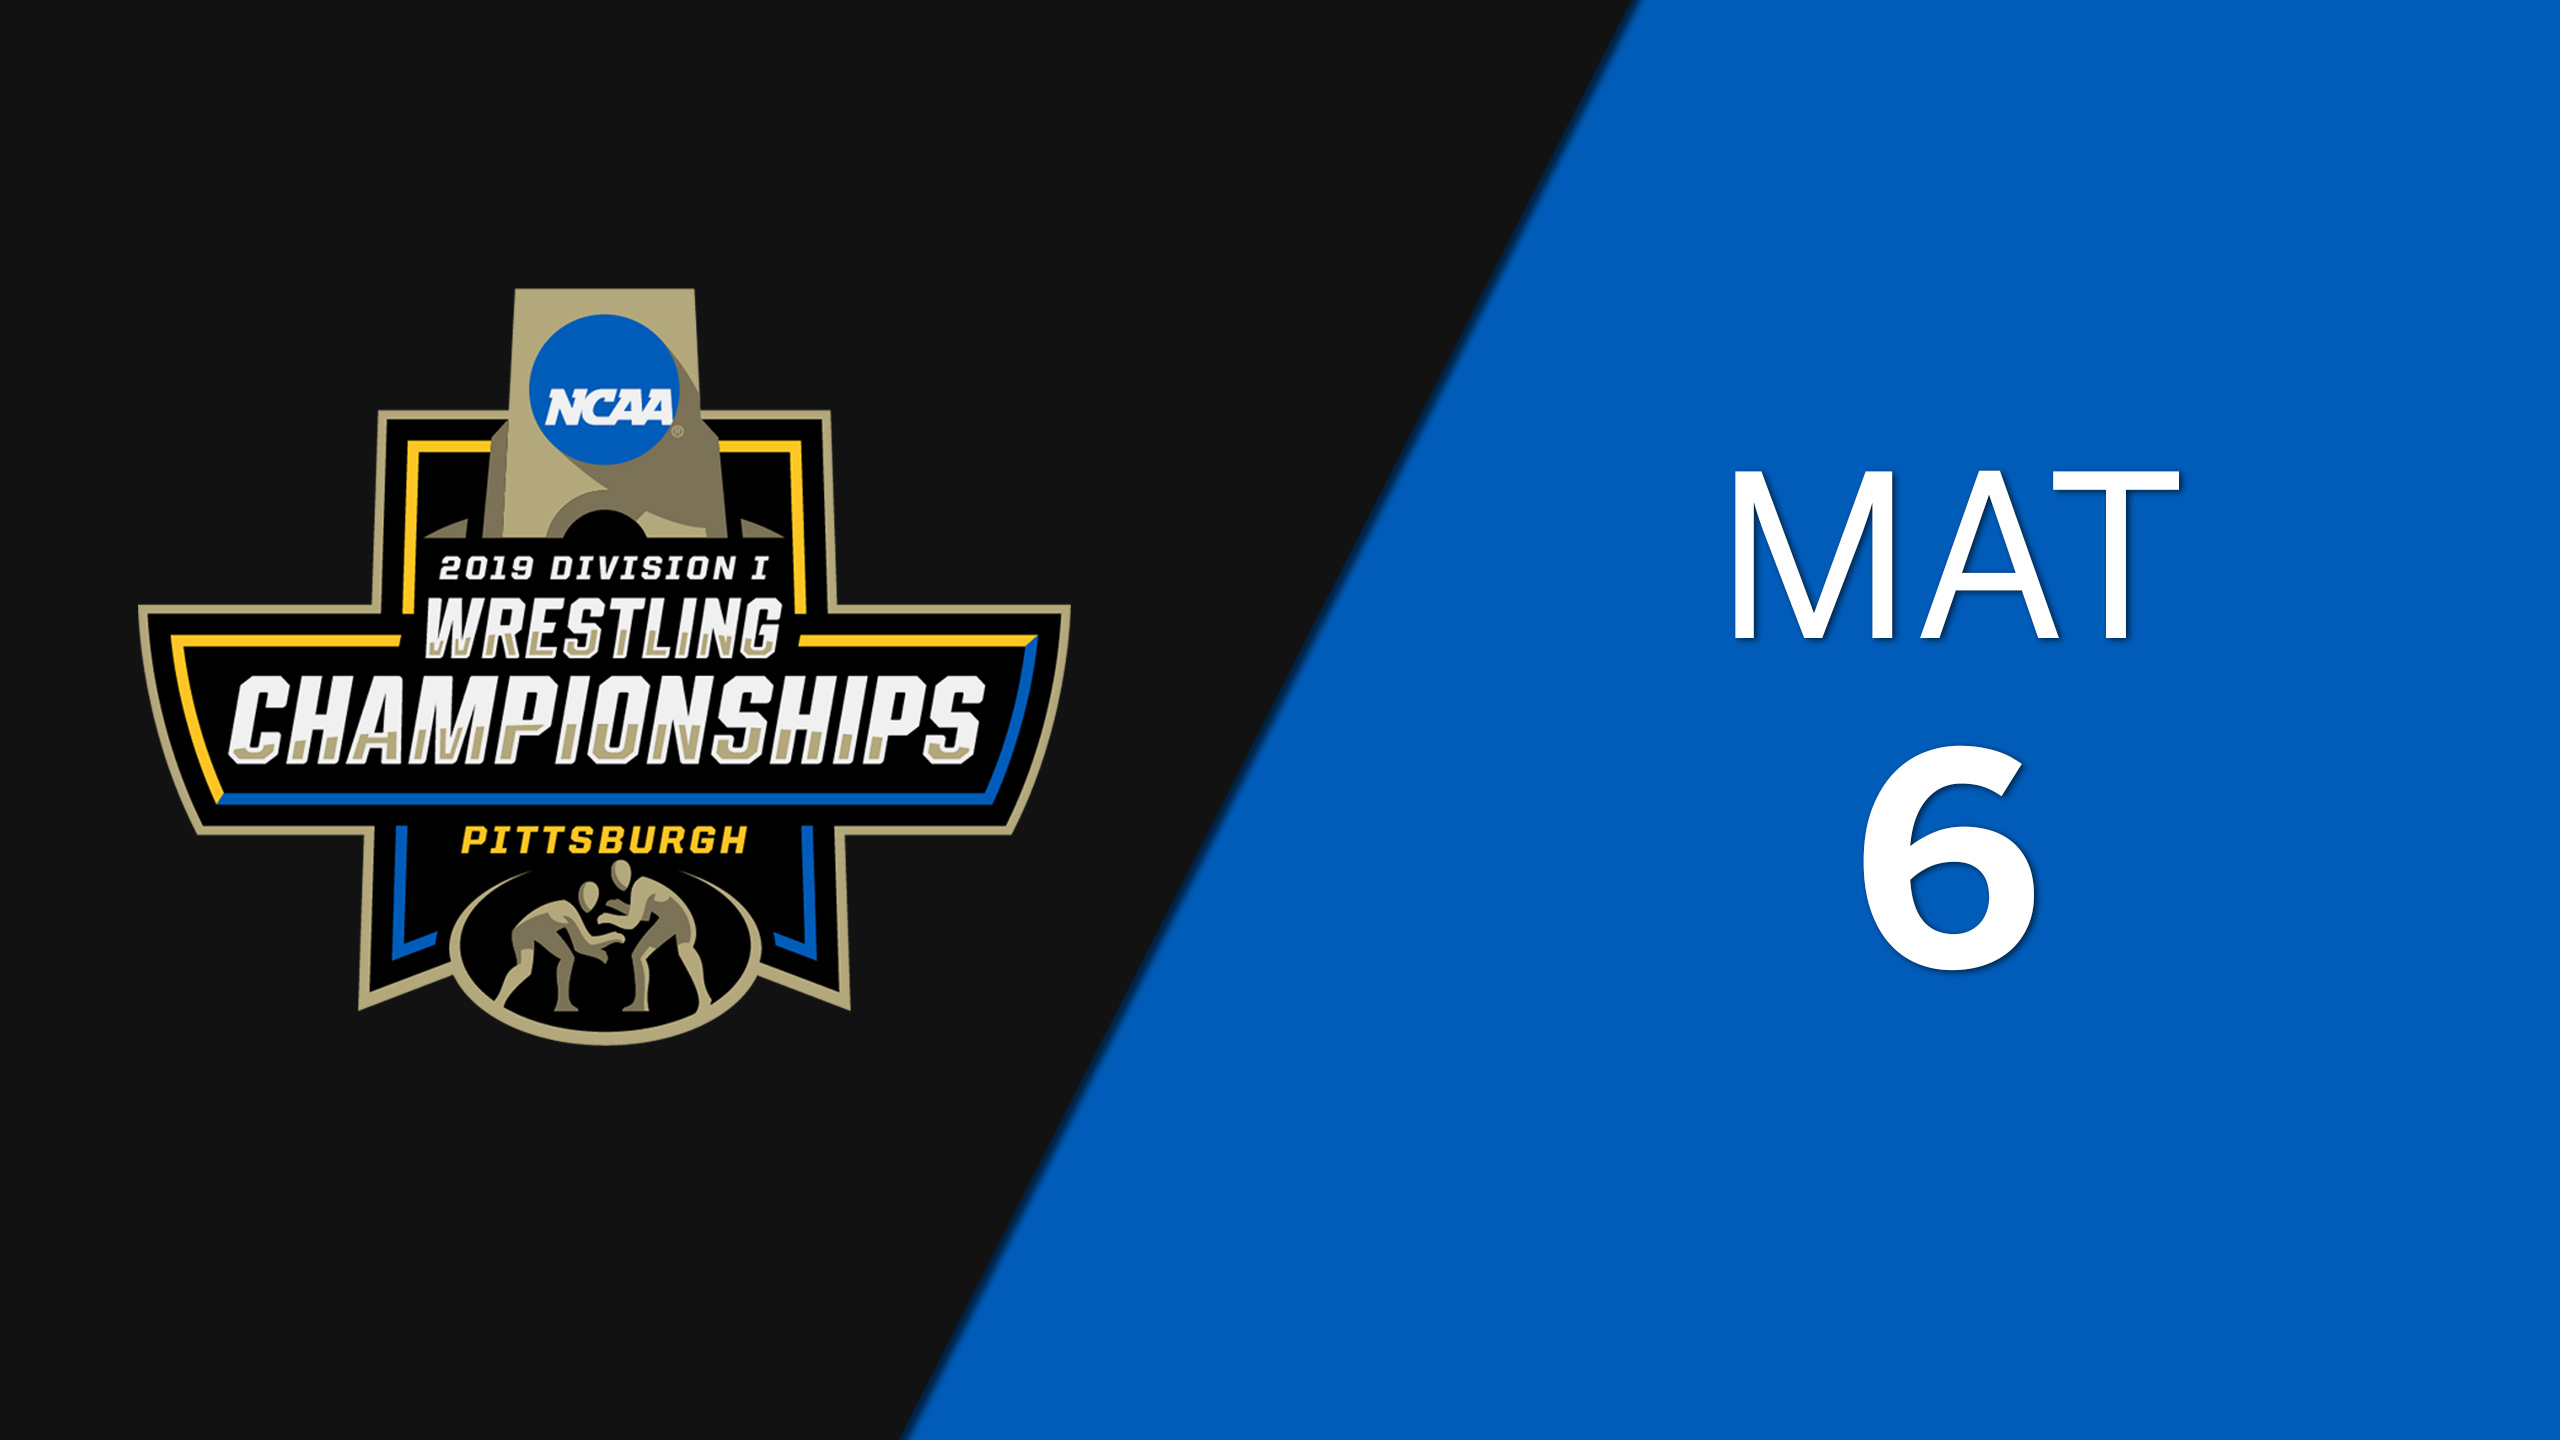 NCAA Wrestling Championship (Mat 6, First Round)